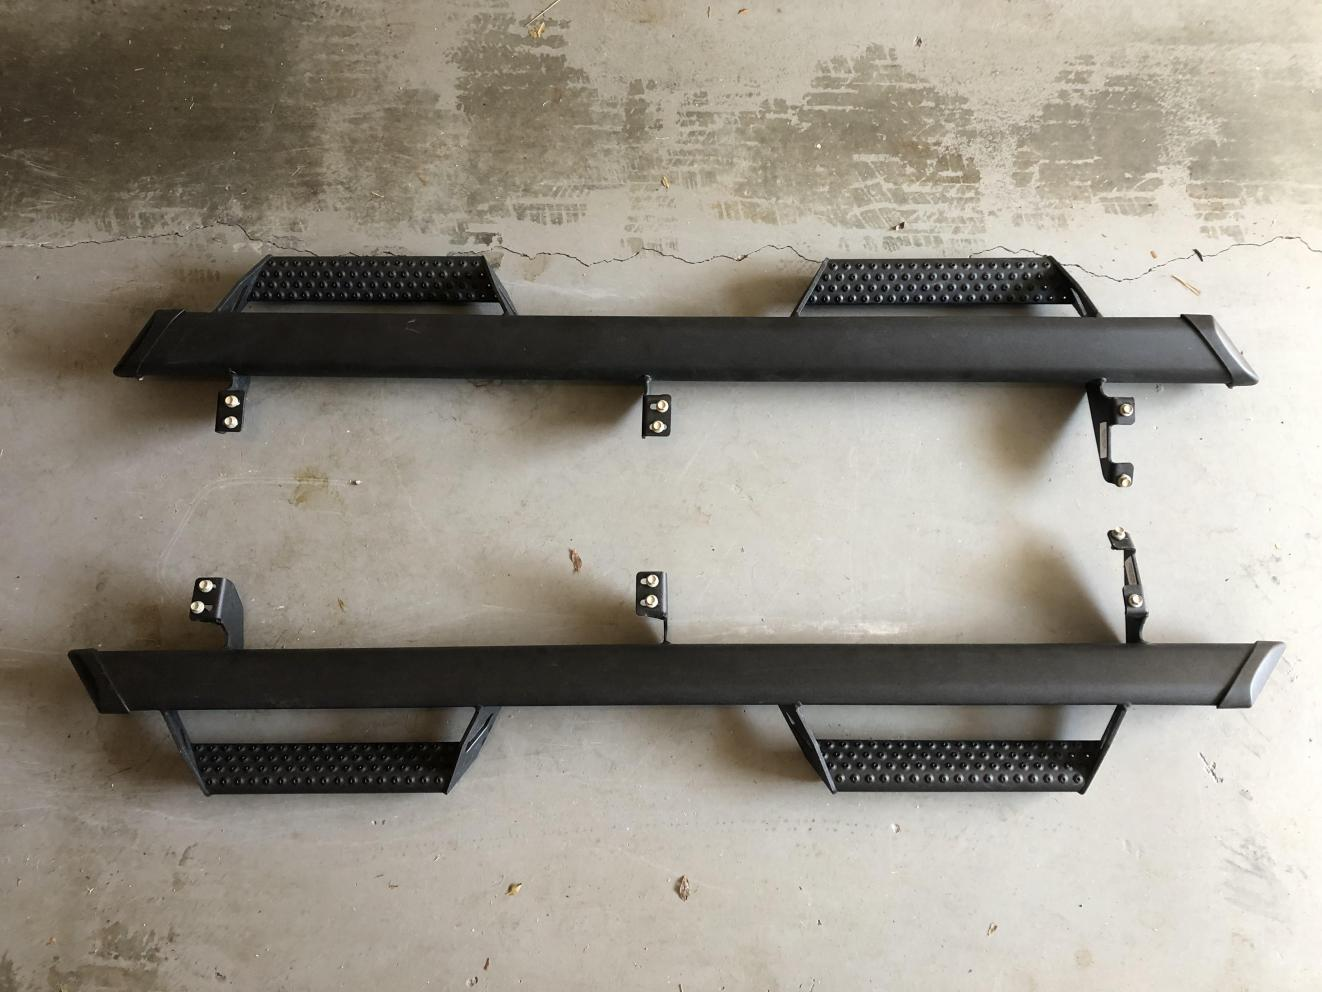 5th Gen For Sale/Wanted Thread-step-bars-1-jpg